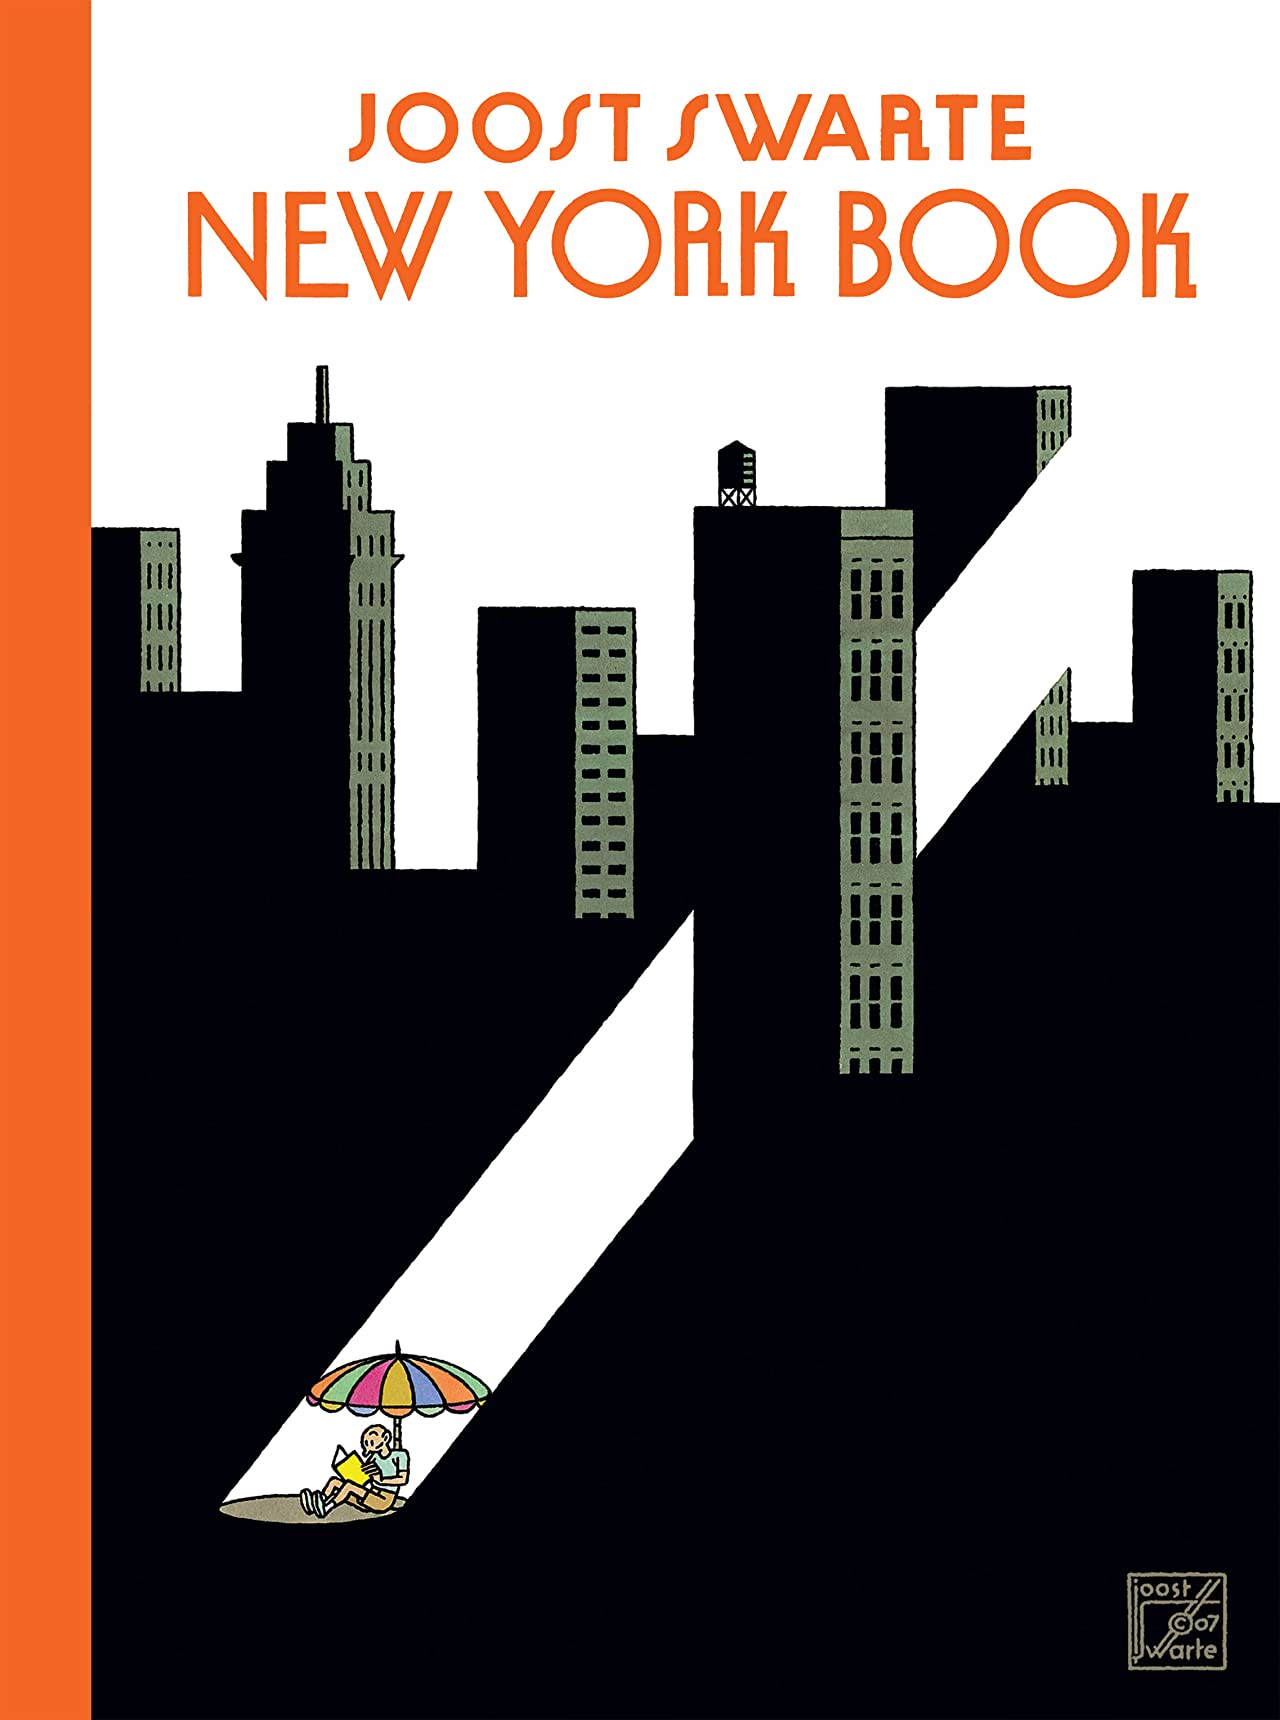 New York Book